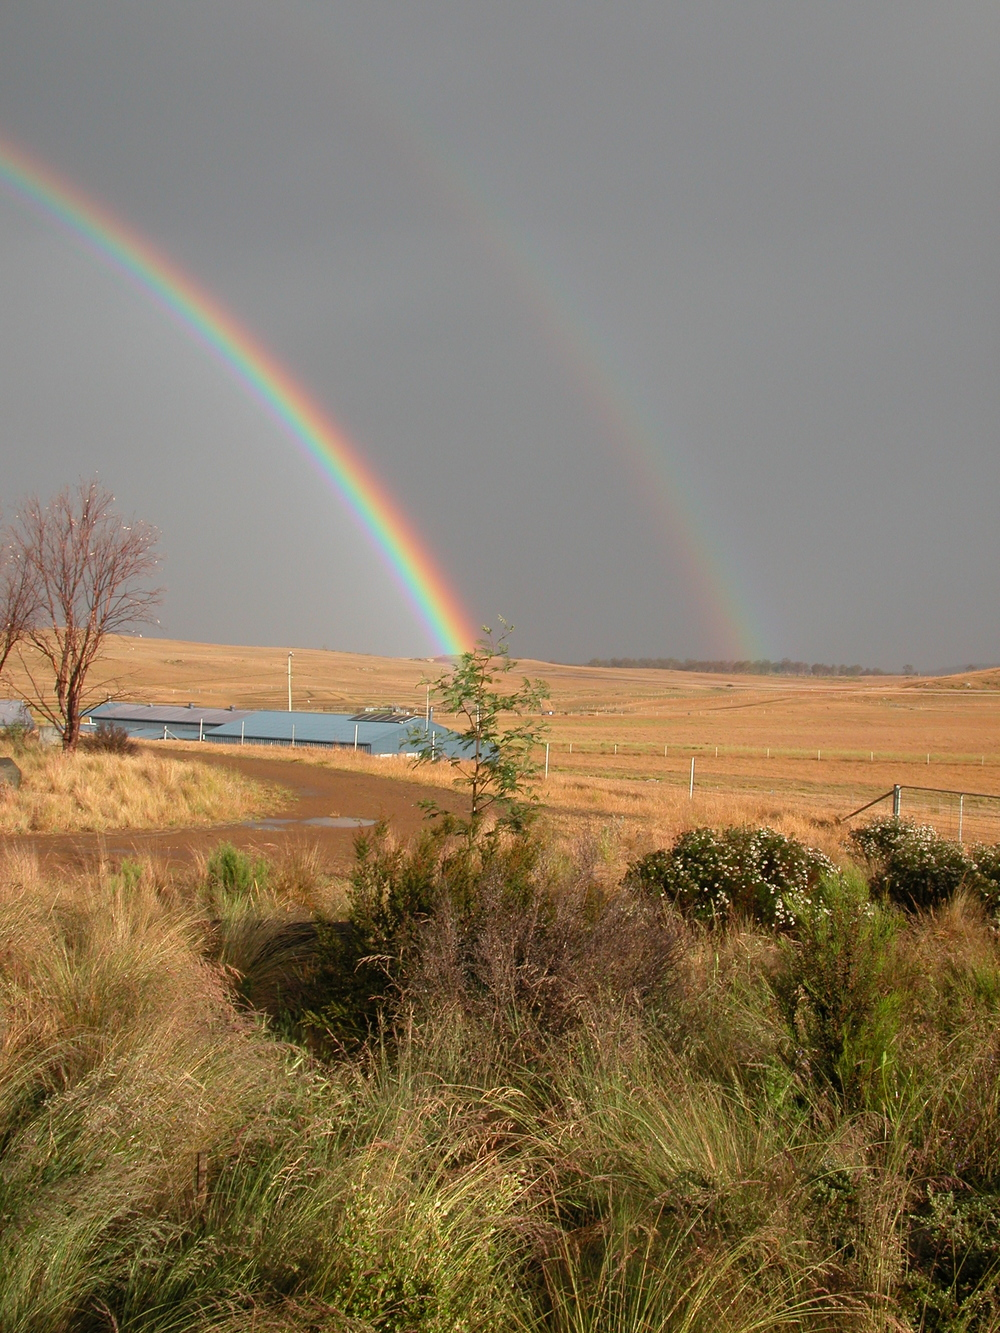 The woolshed at the end of the rainbow.